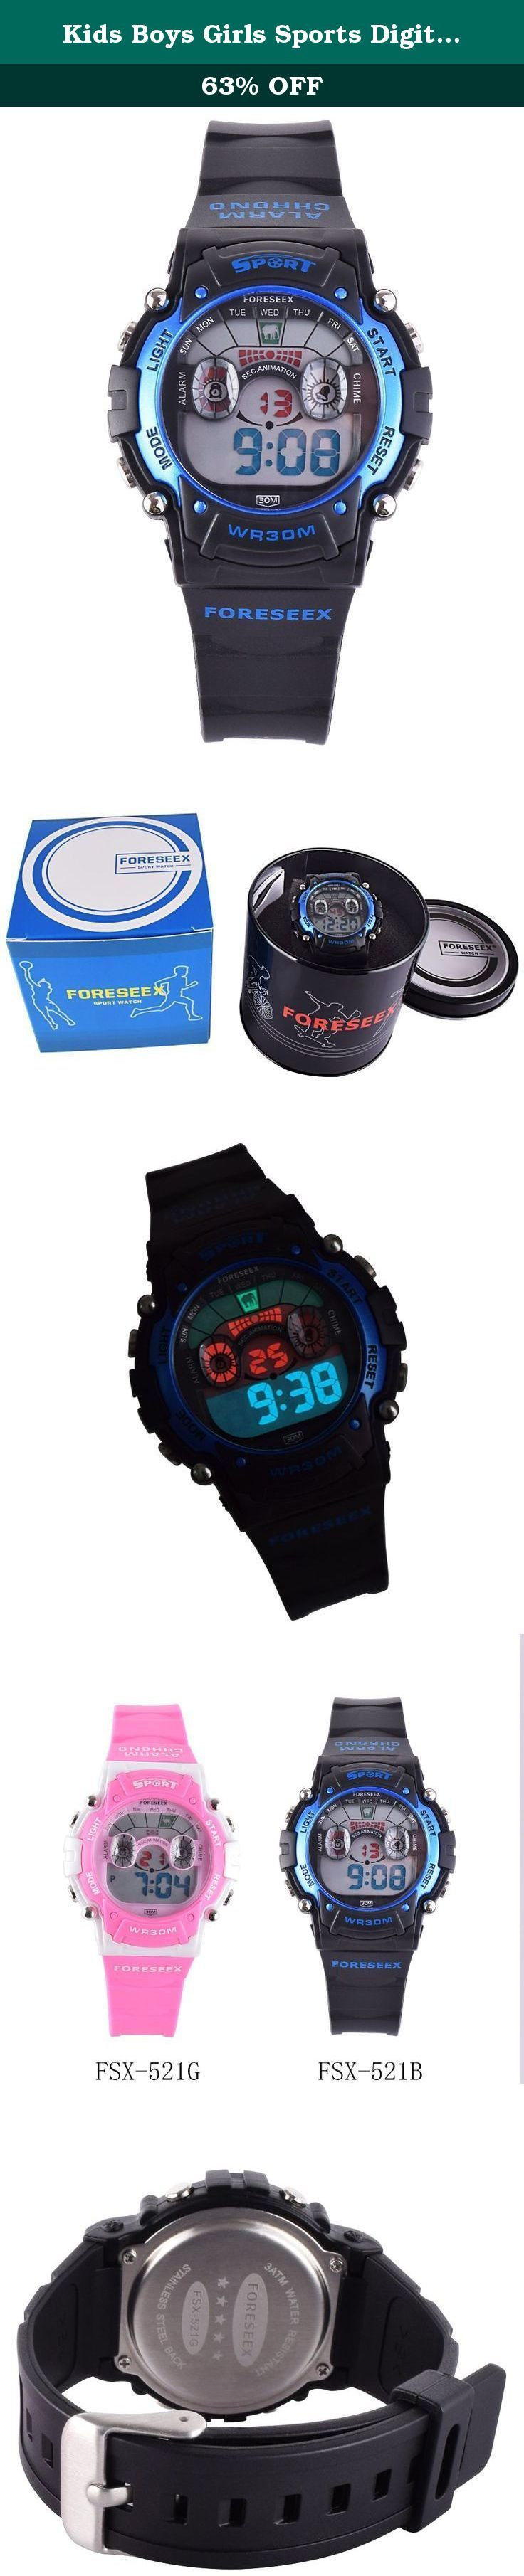 Kids Boys Girls Sports Digital Water Resistant Eyes Watch w/ Back Light Alarm Stopwatch Blue FSX-521B. A better watch for daily use or teaching kids to tell time If you are looking for a watch for daily use or for your kids, you have found the right watch. The watch is durable, digital display, water resistant and has EL back light, long-last battery. It meets all your needs as a daily use watch. You don't need to take off the watch when washing hands, taking shower or swimming (Just…